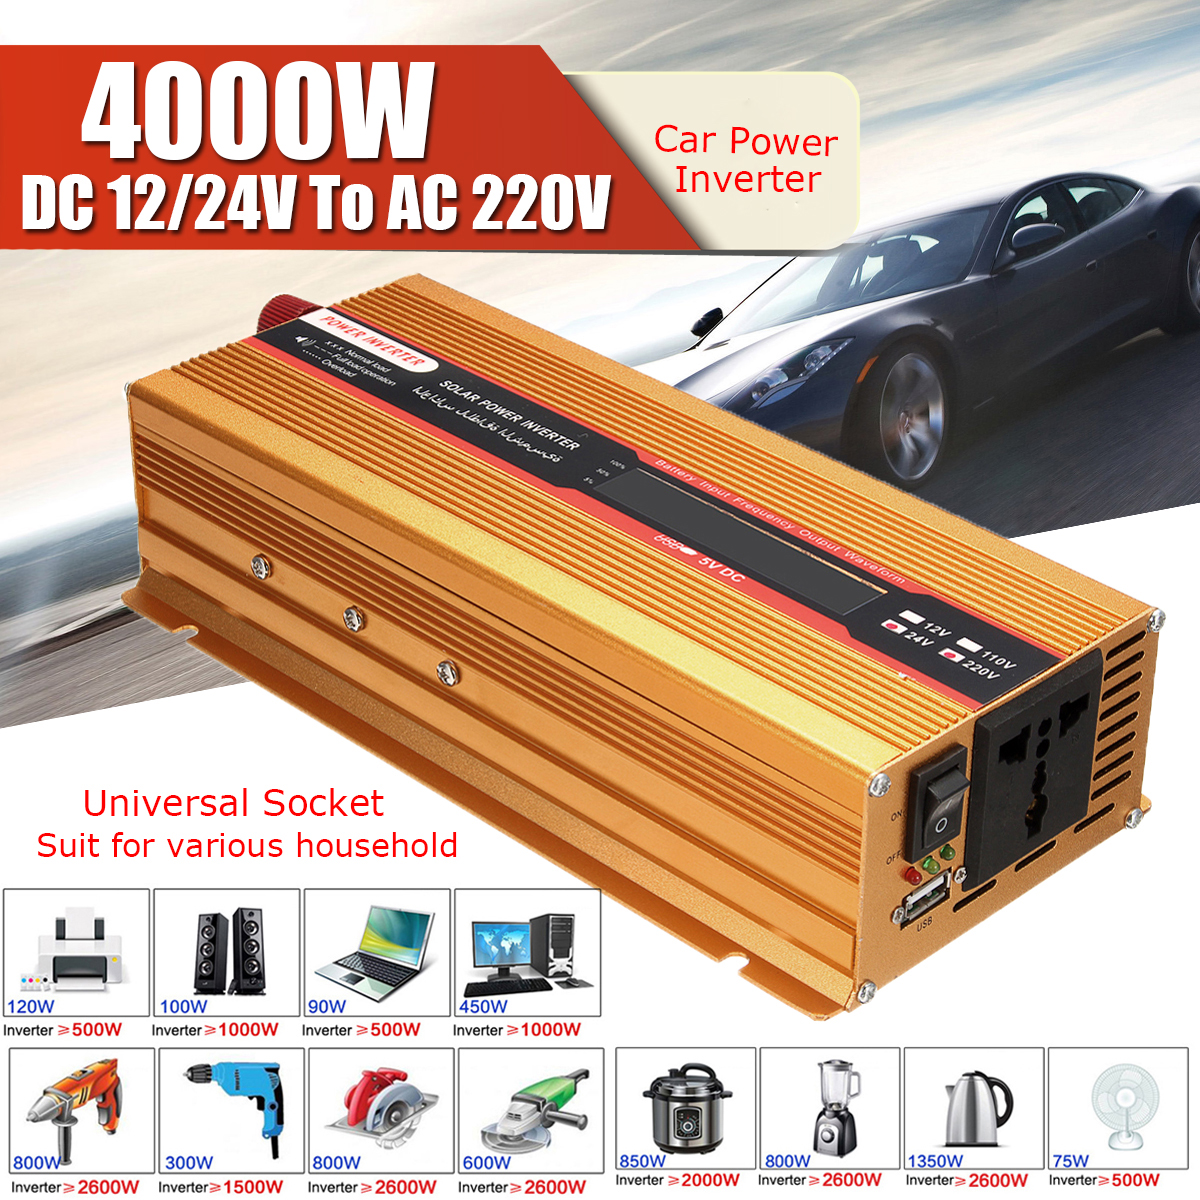 Voltage Transformer PEAK 4000W USB Modified Sine Wave Converter 12/24V To AC 220/110V Car Power Inverter for Various Appliances peak 4000w 12 24v to ac 220 110v car power inverter usb modified sine wave converter voltage transformer for various appliances